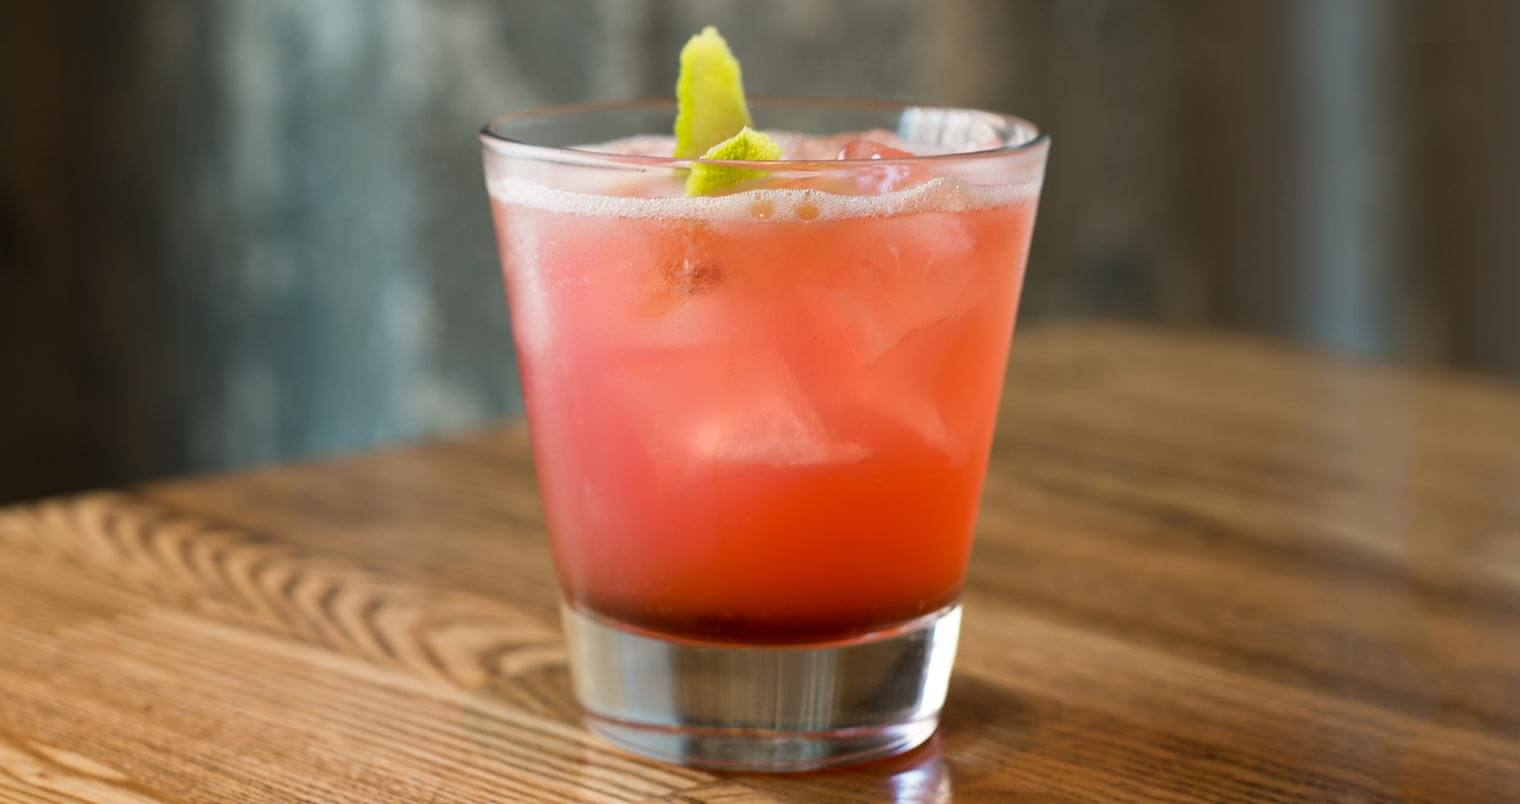 Must Mix: Rosarito - Hibiscus Infused Reposado and Lime Cocktail, cocktails, featured image